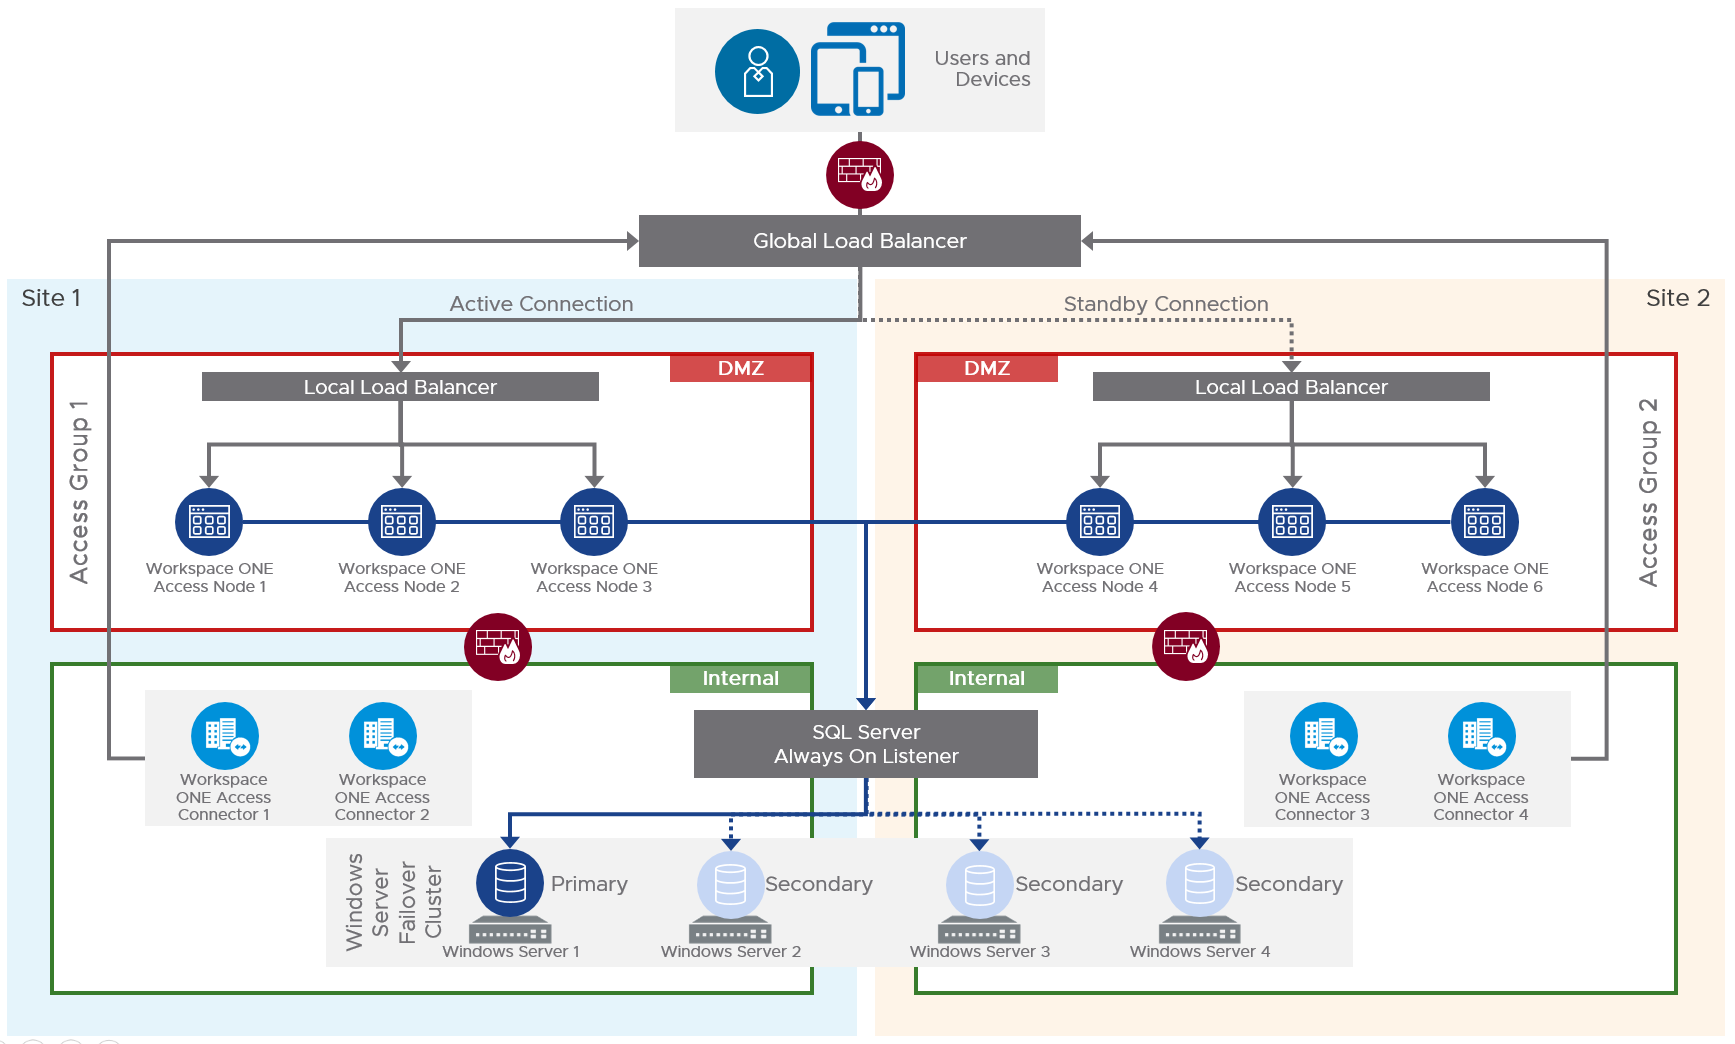 On-Premises Multi-site Workspace ONE Access Architecture